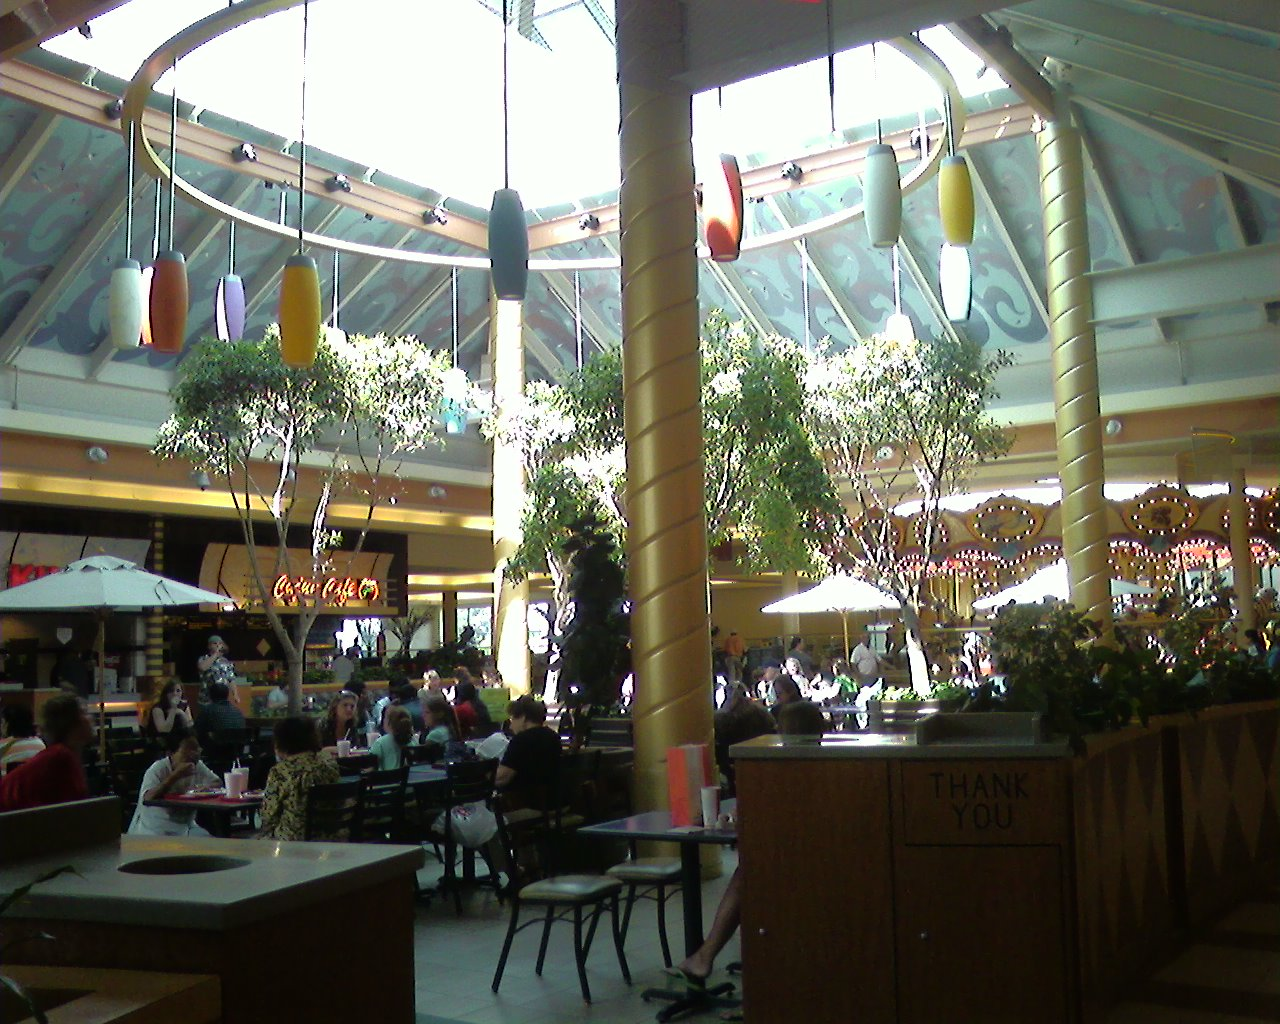 Malls In Ct >> Labelscar: The Retail History BlogThe Shoppes at Buckland Hills; Manchester, Connecticut ...